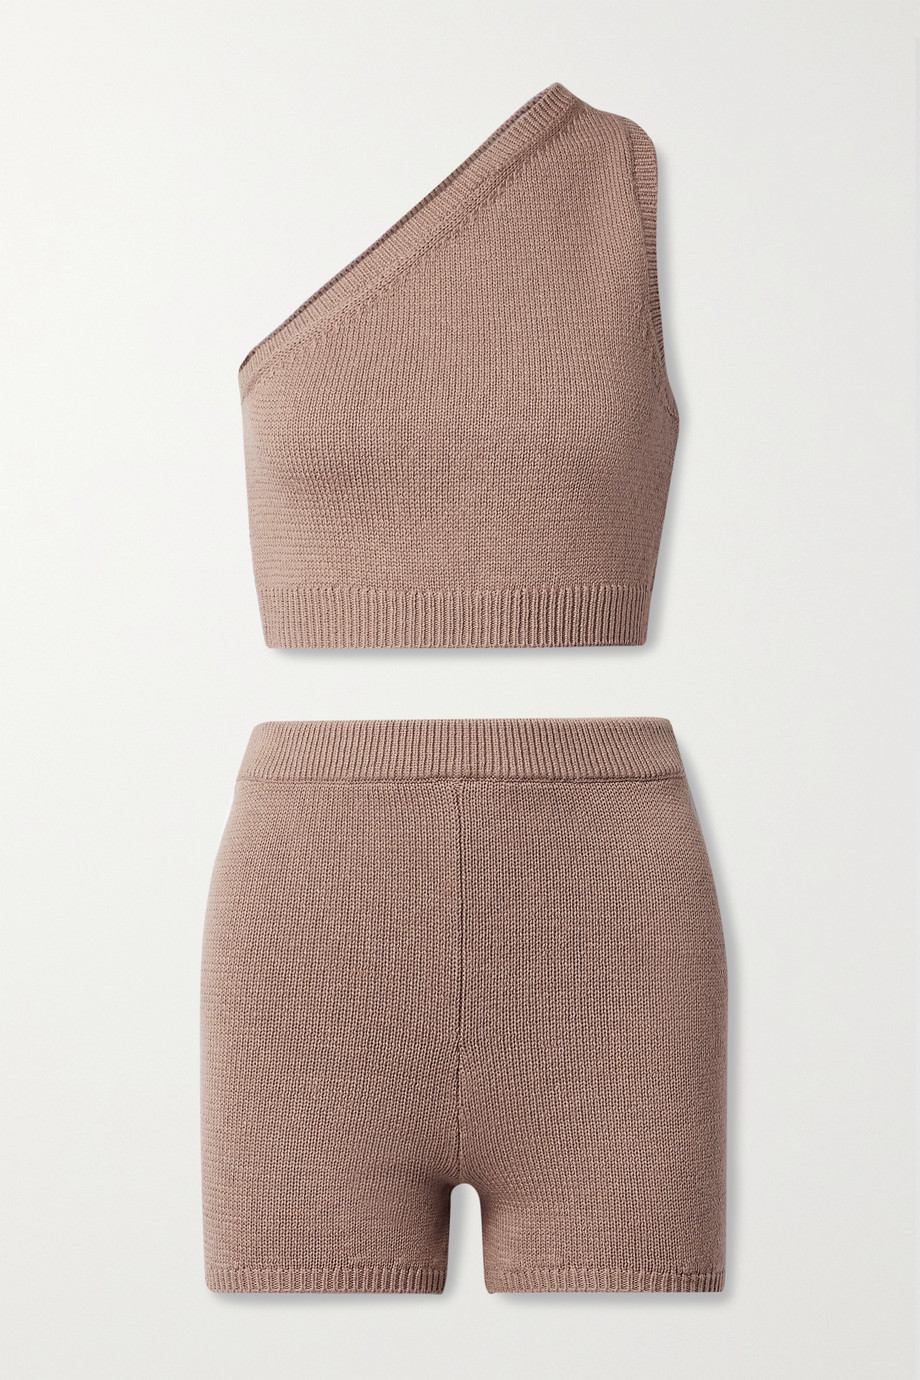 Reformation Roze one-shoulder organic cotton tank and shorts set